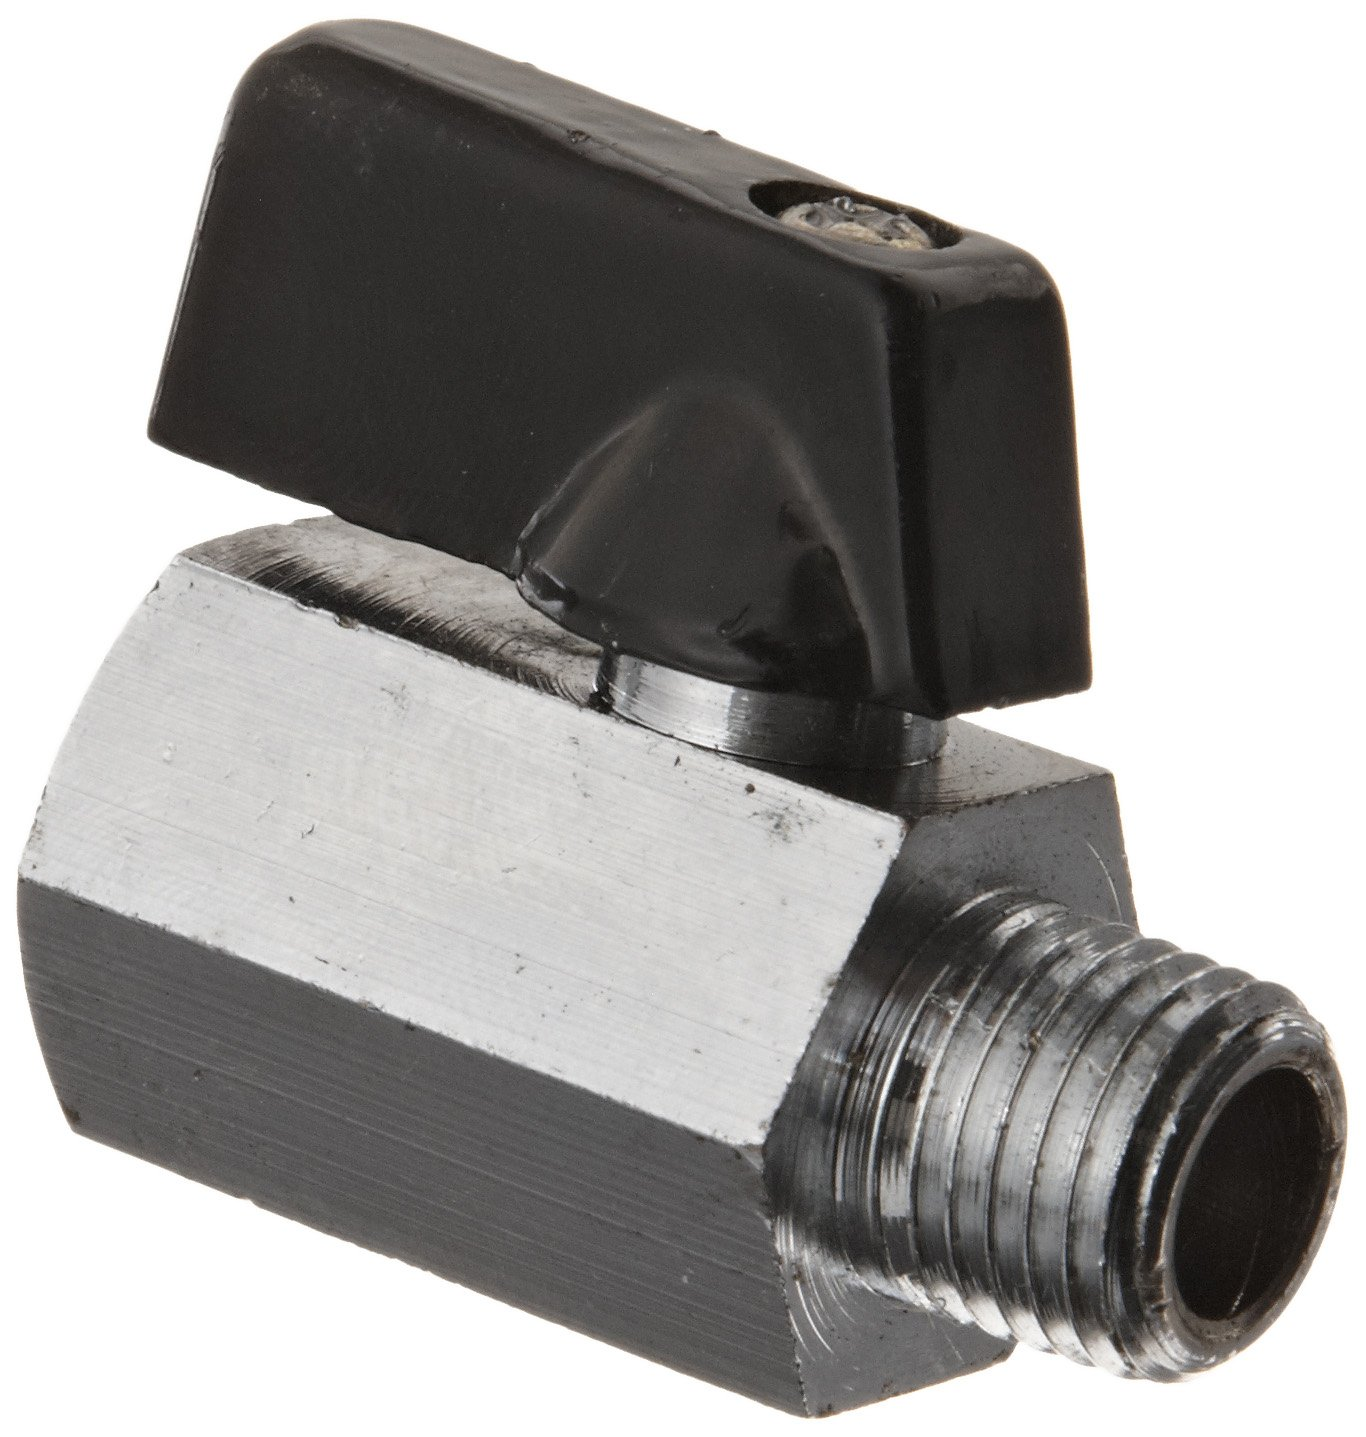 Lever Kingston KMBVM Series Brass Mini Ball Valve 1//4 NPT Male x NPT Female 1//4 NPT Male x NPT Female Kingston Valves KMBVM-2B